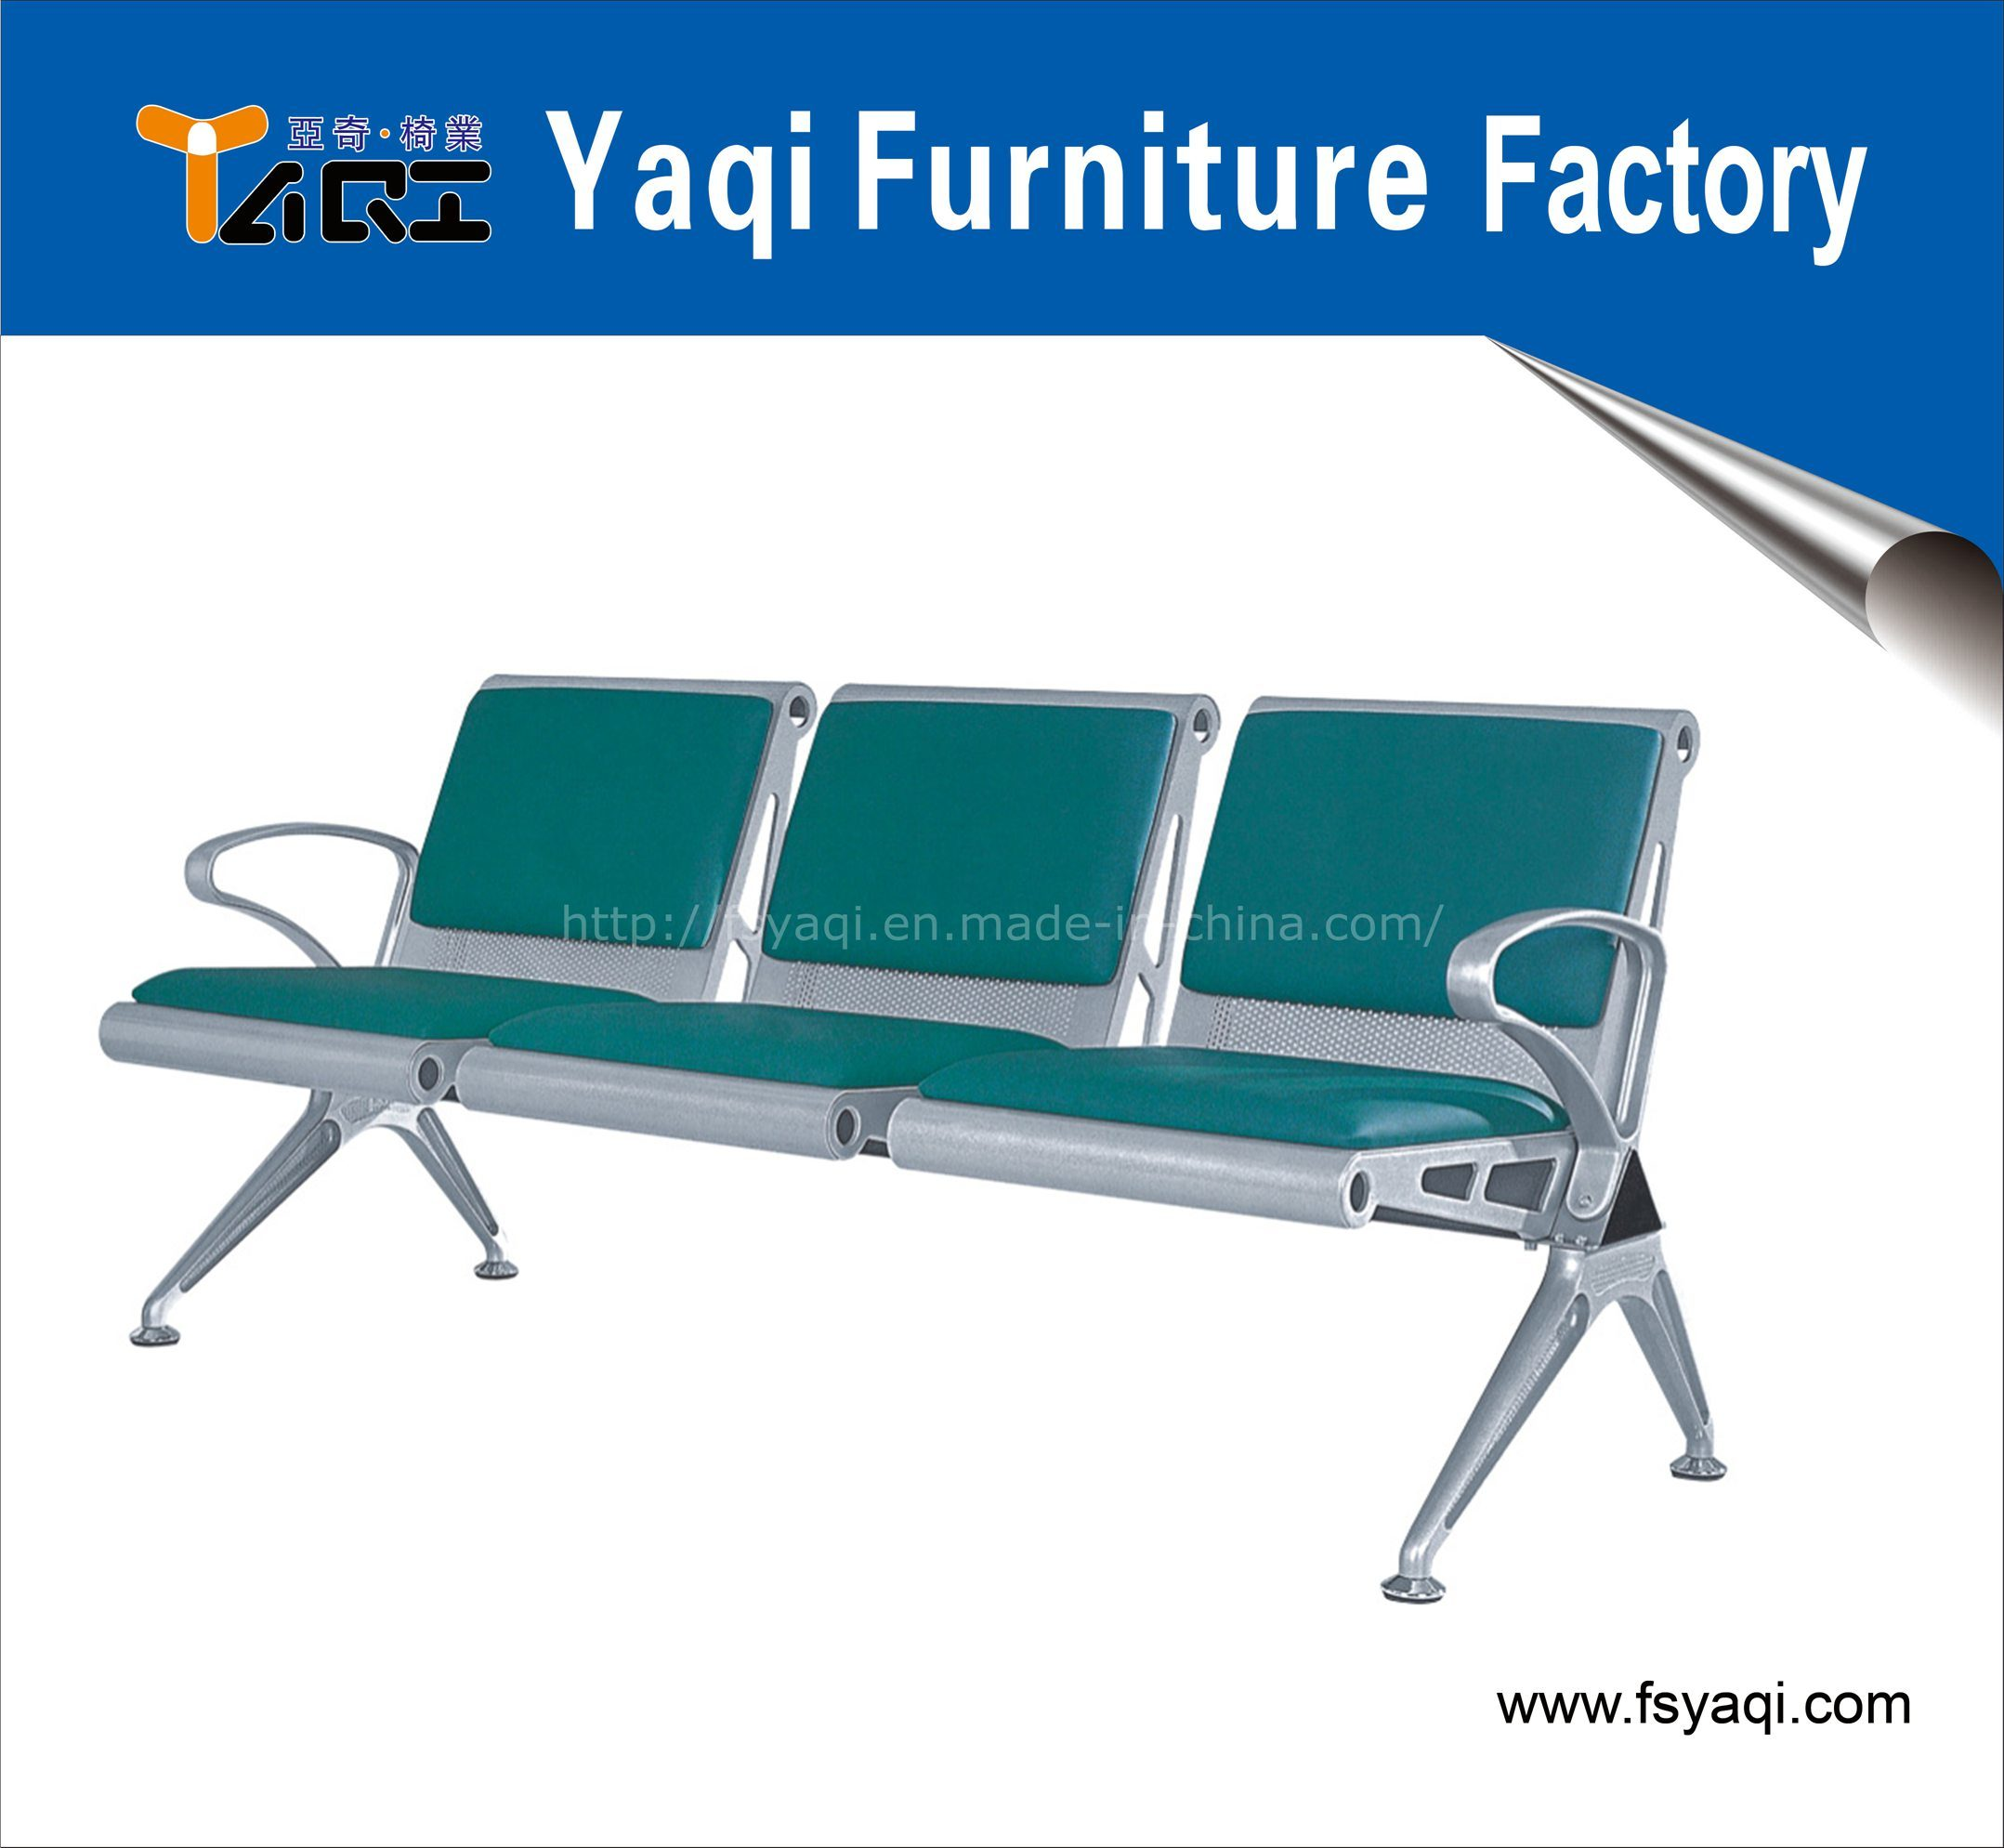 3-Seater Steel Waiting Chair with Cushion for Airport Hospital Station Chair (YA-35B)